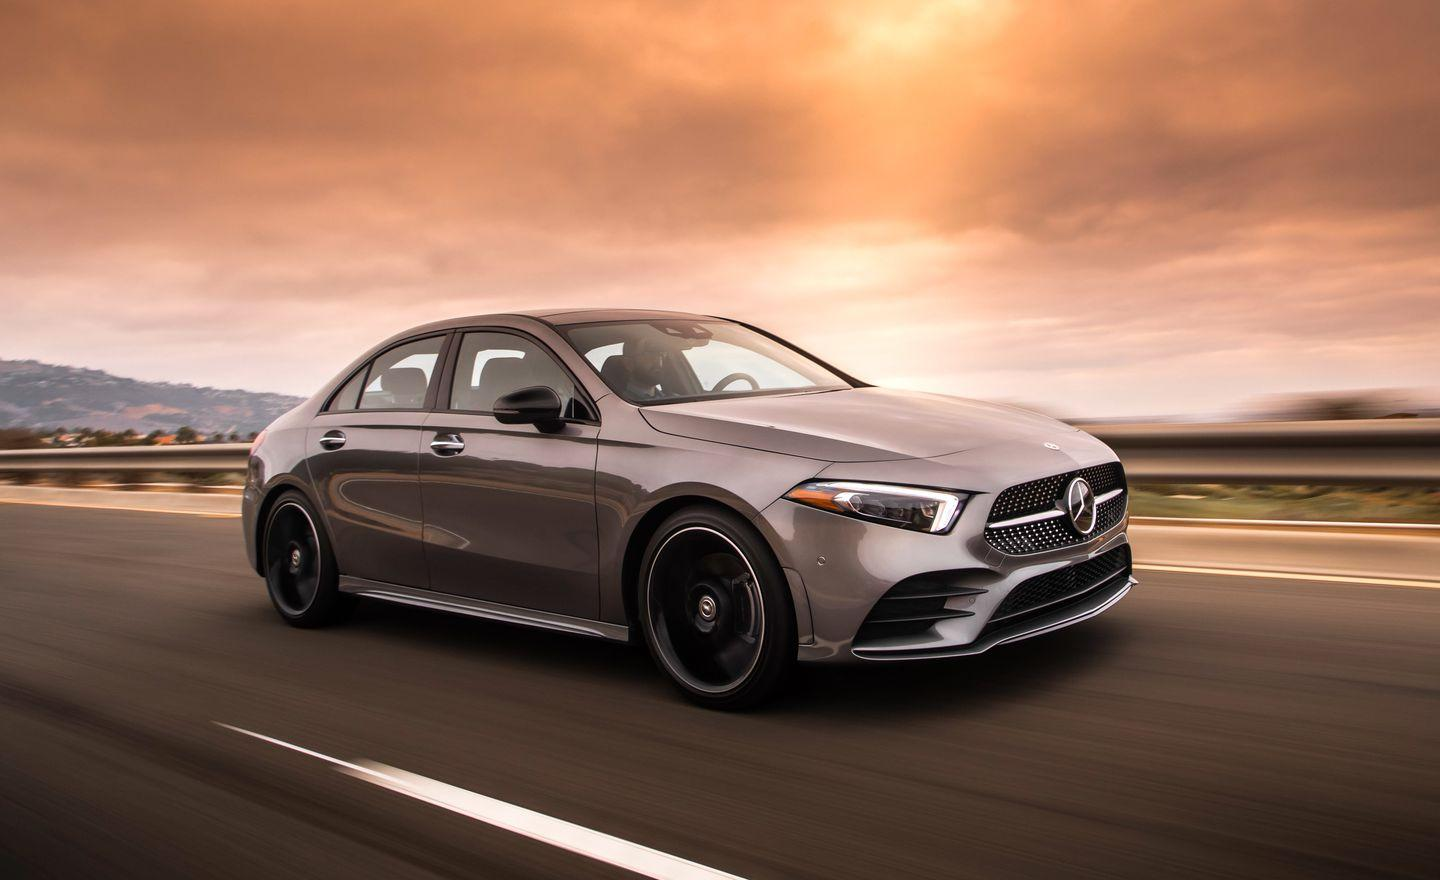 "<p>Under its steel skin, <a href=""https://www.caranddriver.com/mercedes-benz/a-class"" rel=""nofollow noopener"" target=""_blank"" data-ylk=""slk:the A-class"" class=""link rapid-noclick-resp"">the A-class</a> rides on an evolution of the transverse-engine platform underpinning the current CLA.</p>"